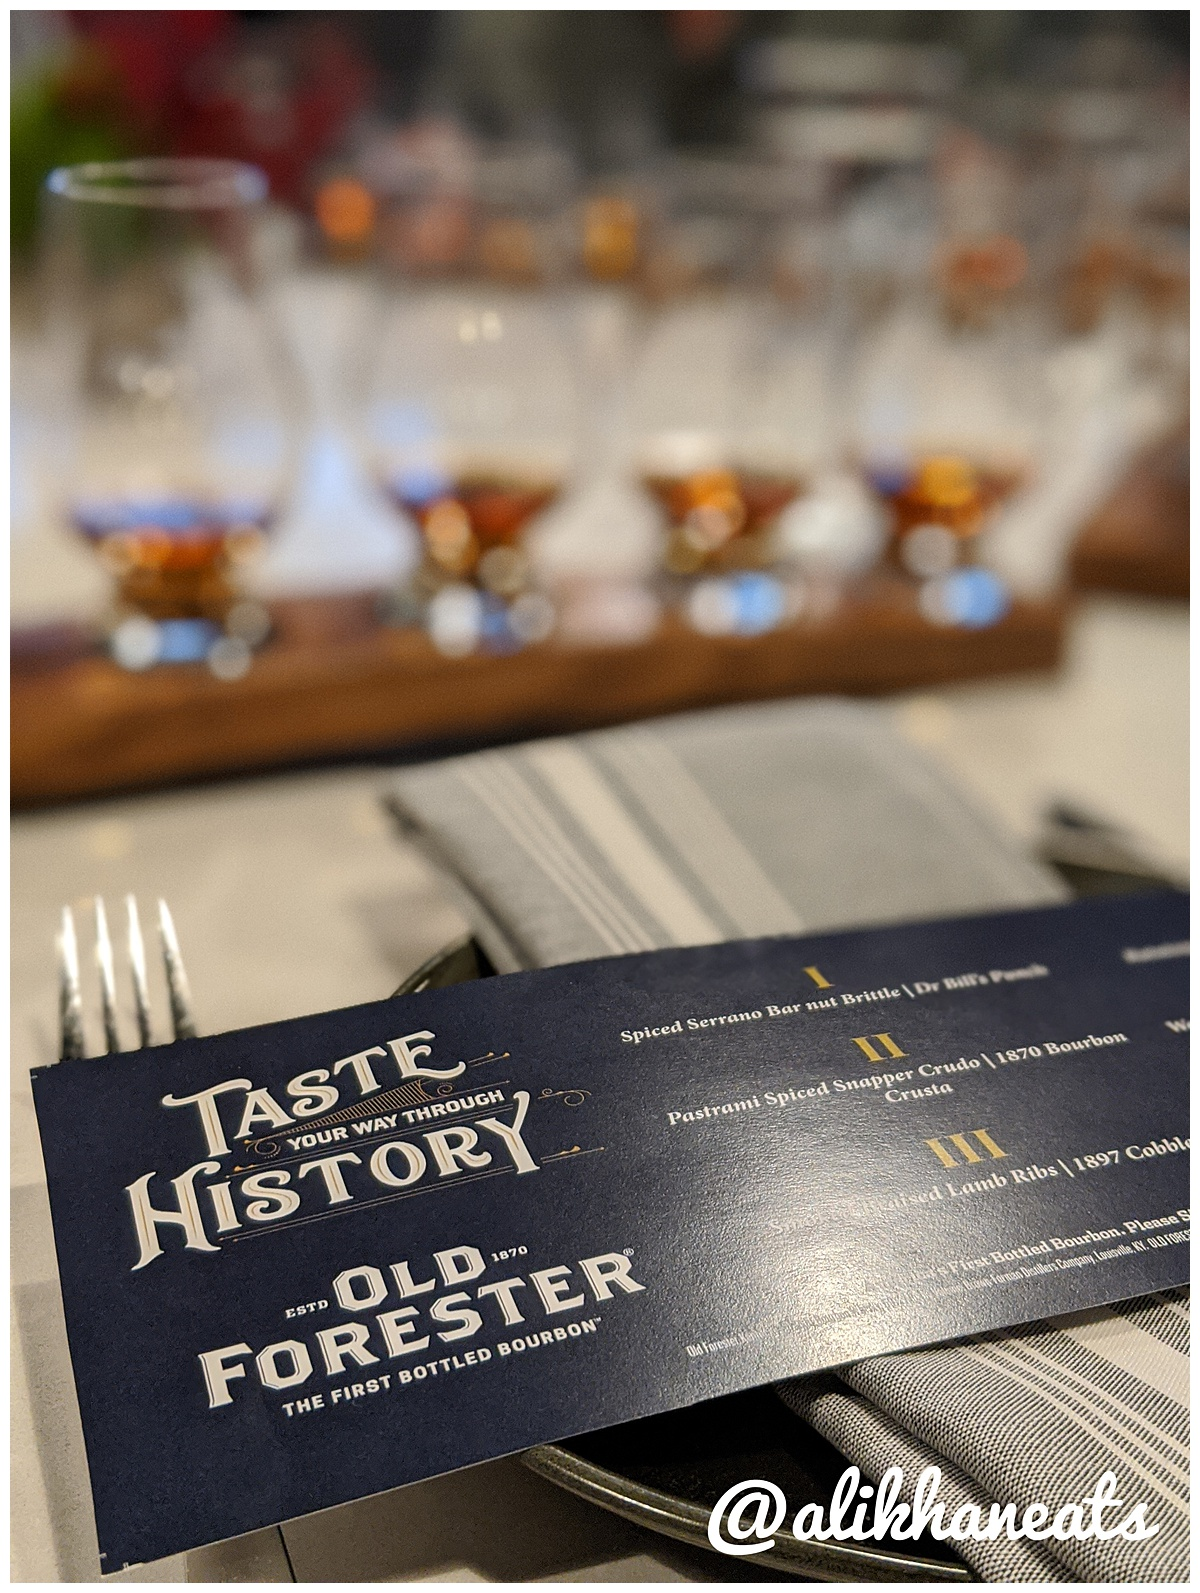 Old Forester tasting menu with bourbon pairings for the evening